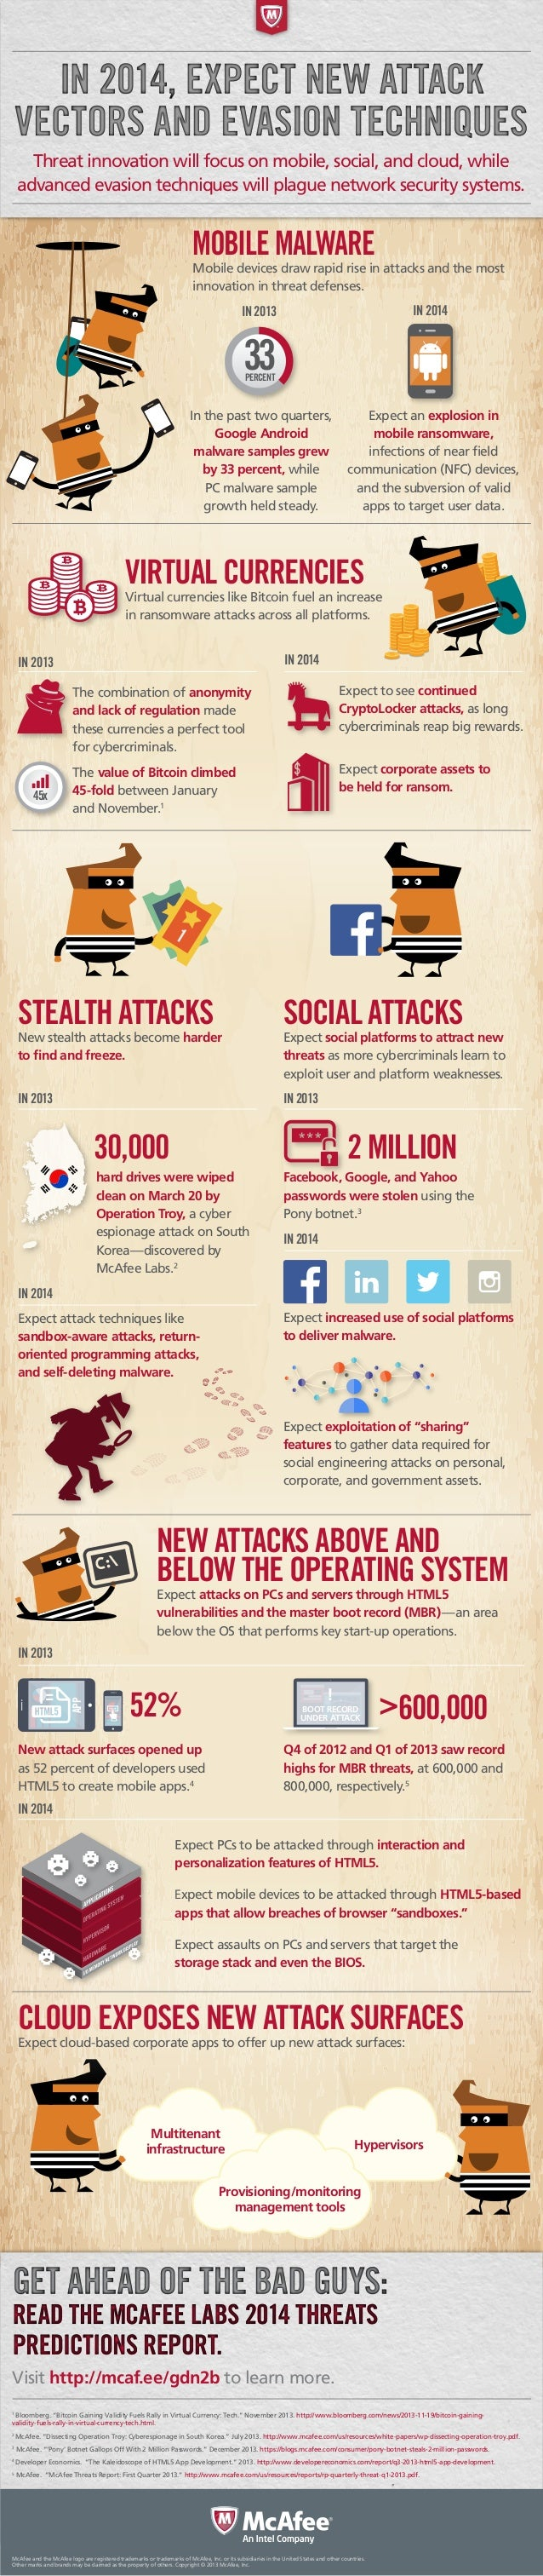 IN 2014, EXPECT NEW ATTACK VECTORS AND EVASION TECHNIQUES Threat innovation will focus on mobile, social, and cloud, while...